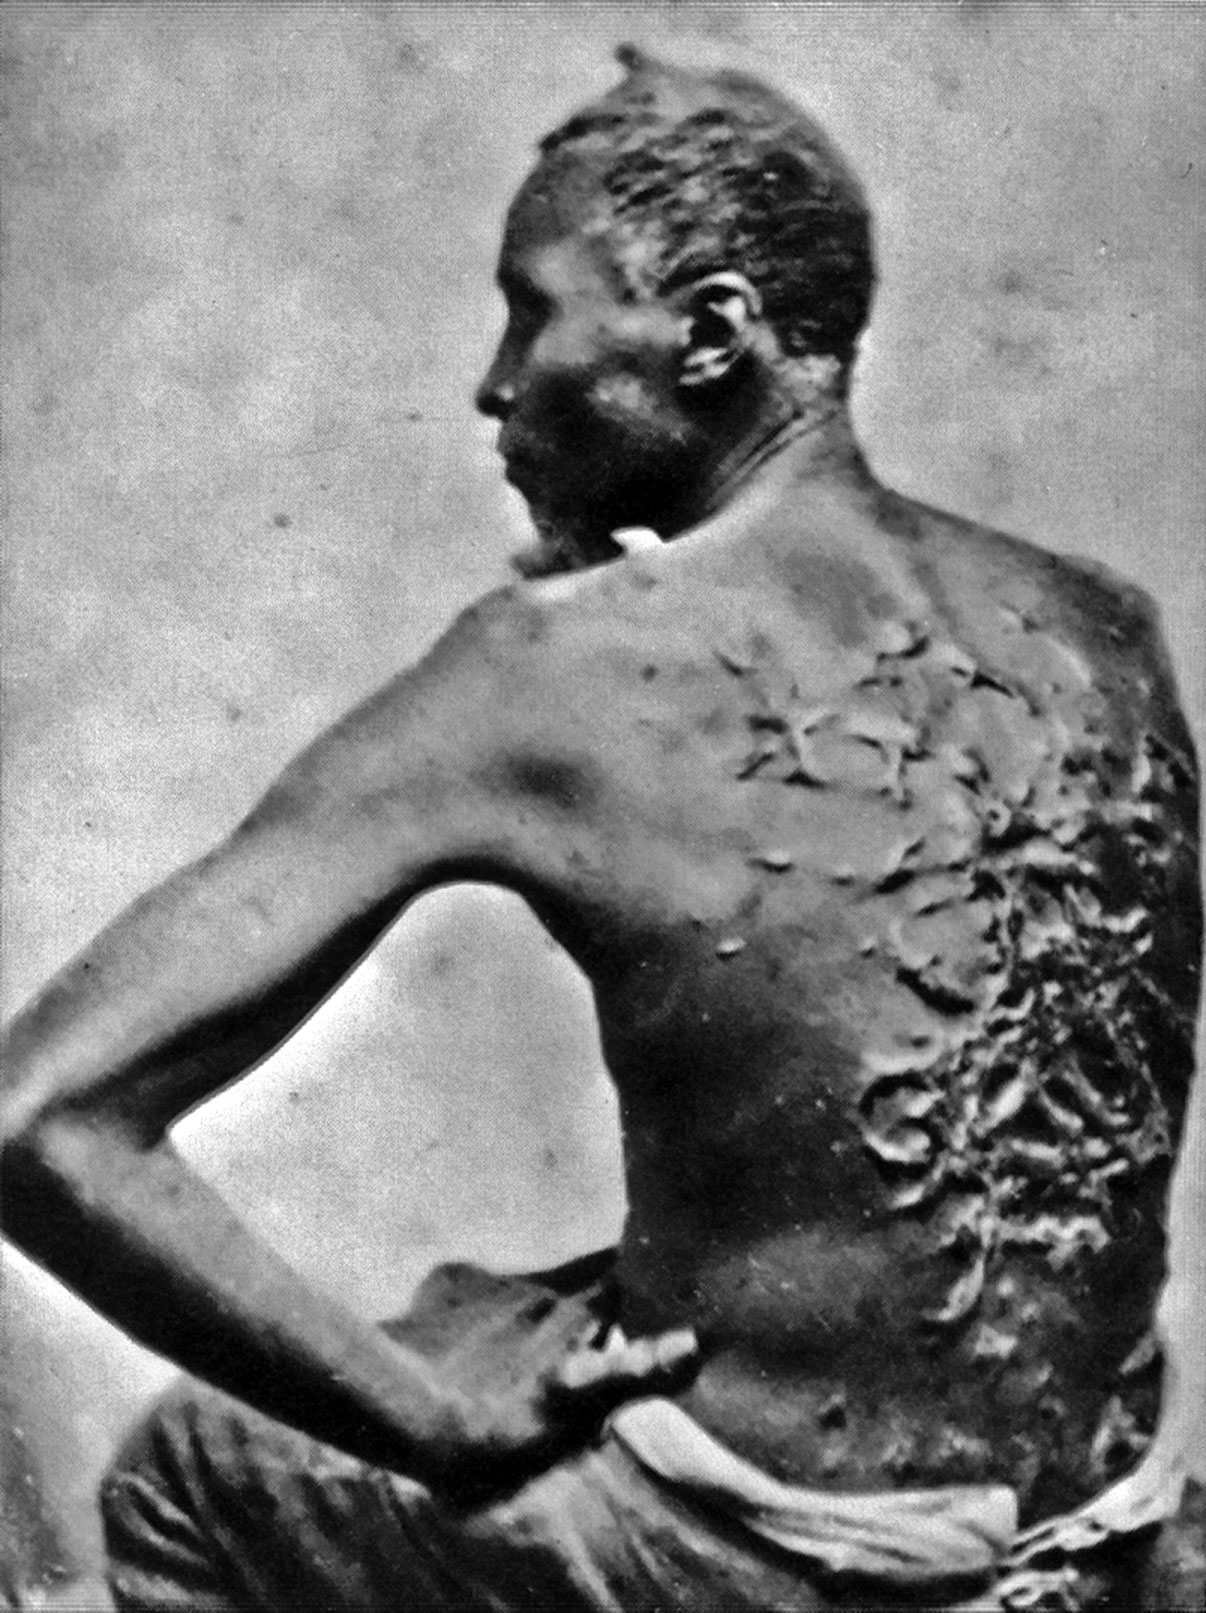 Gordon, a Louisiana slave who escaped to freedom in March 1863. He later joined the Union Army and served in the Sergeant in the 2nd Louisiana Regiment Infantry during the Siege of Port Hudson